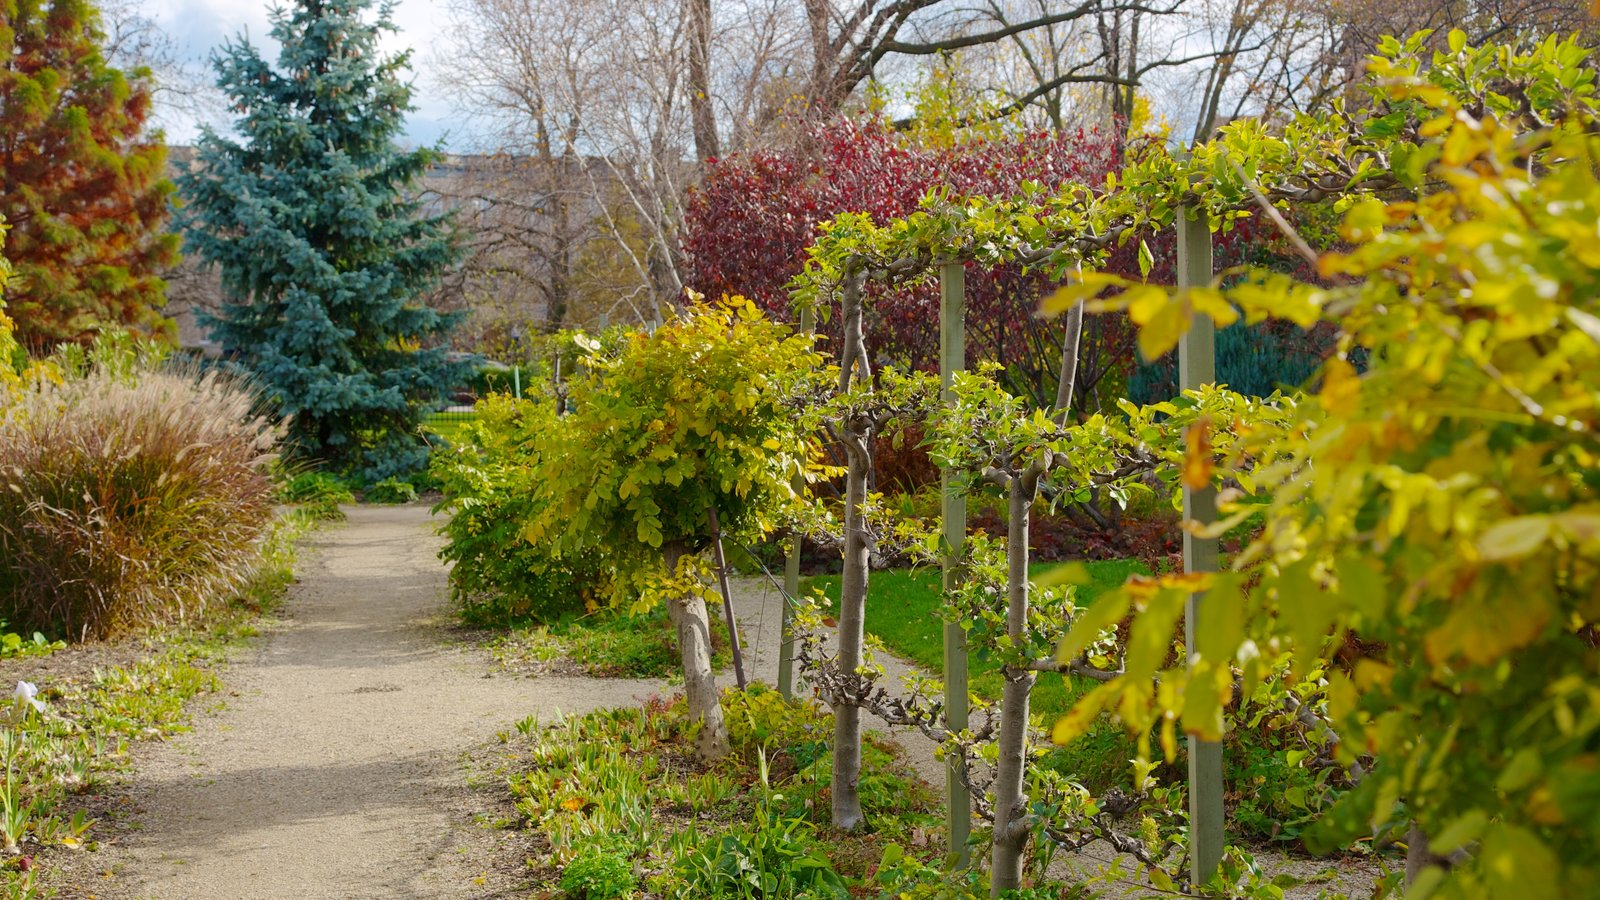 Garfield Park Conservatory showing a park, autumn leaves and landscape views